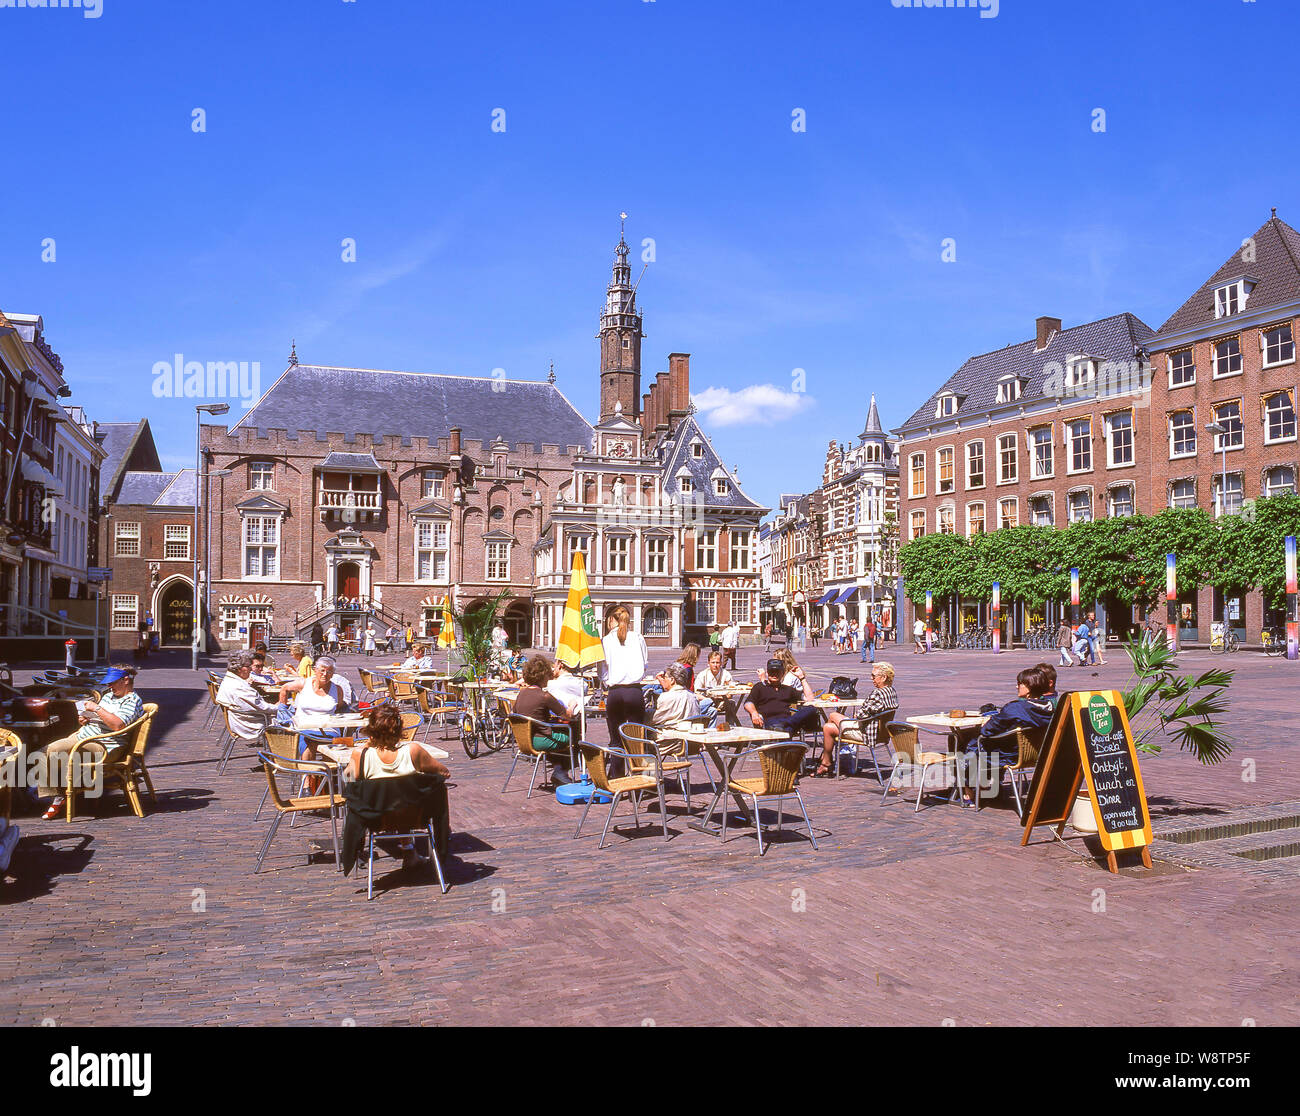 Outdoor cafe, Grote Markt, Haarlem, North Holland (Noord-Holland), Kingdom of the Netherlands Stock Photo